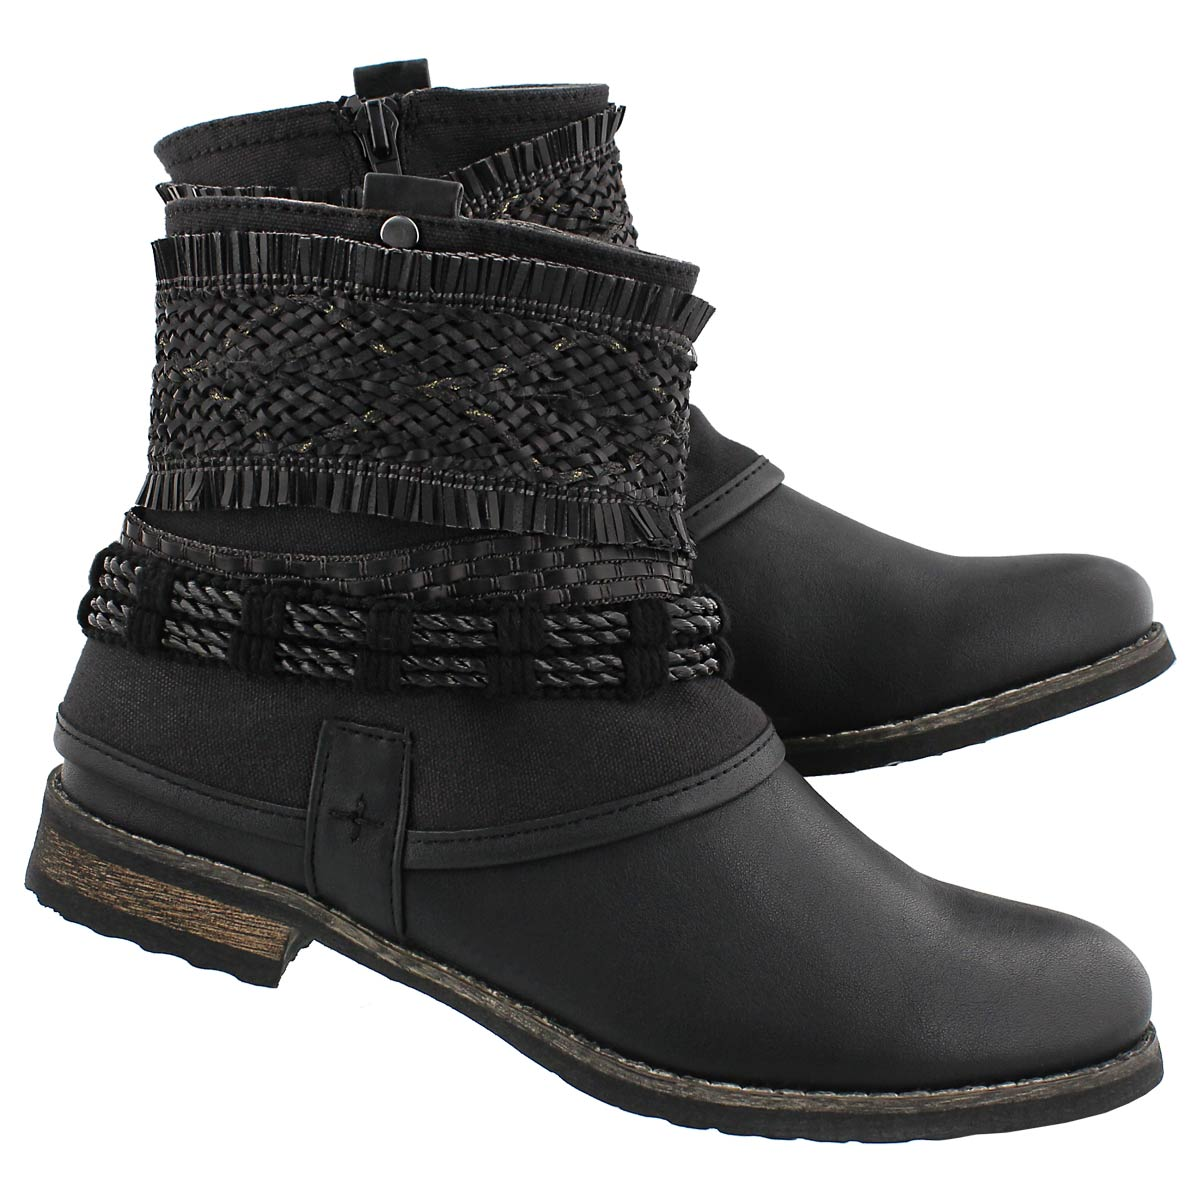 Lds Bizou 2 black casual ankle boot